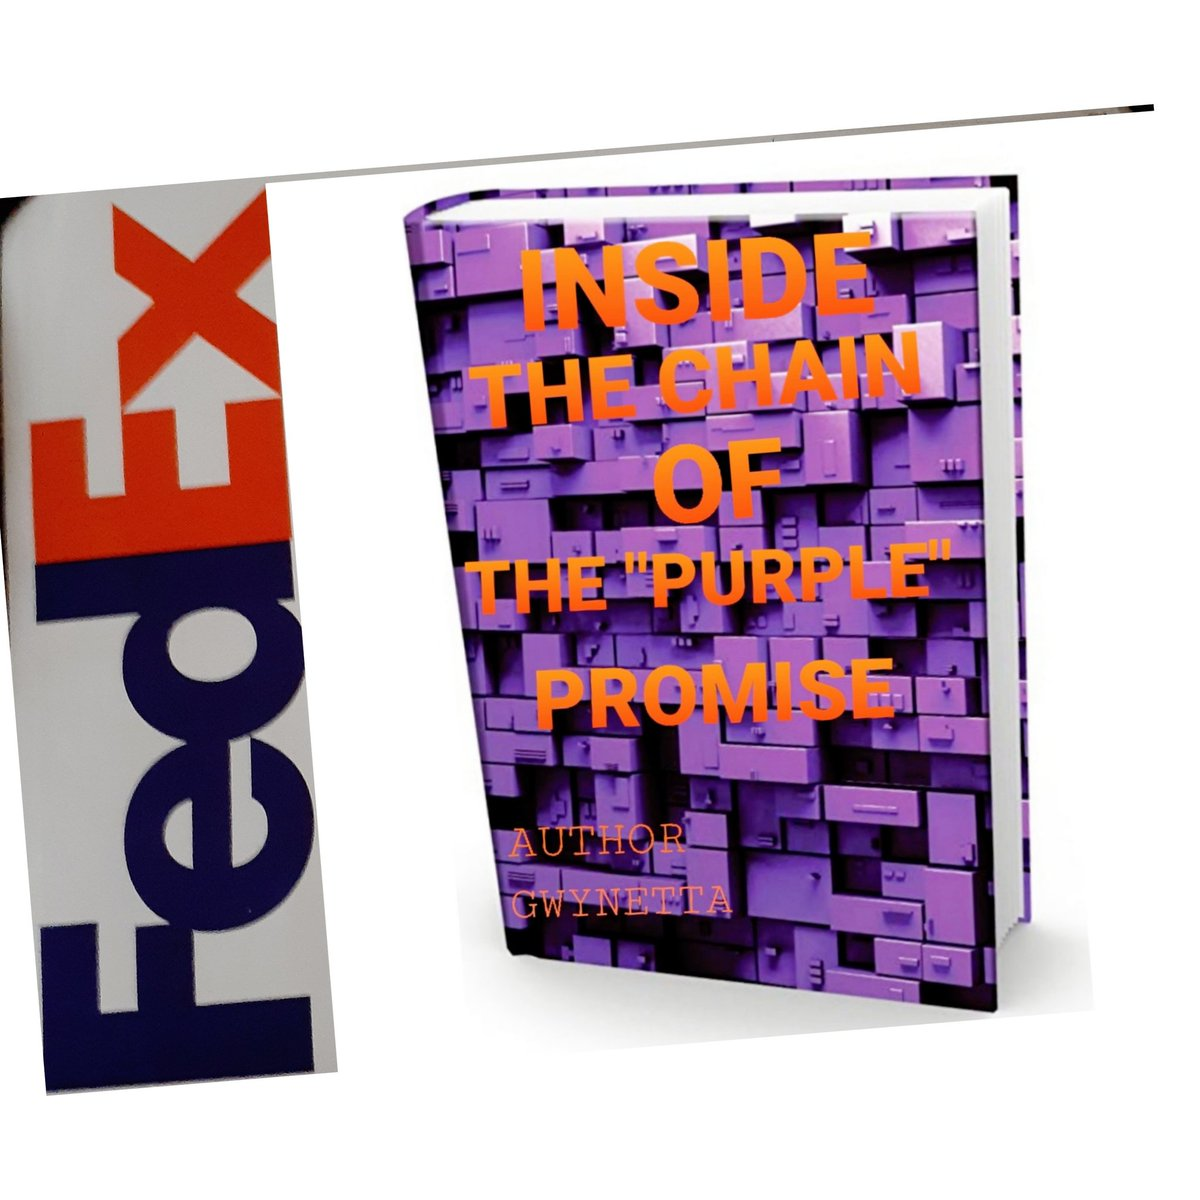 @FedEx I HAVE TO MEET FRED SMITH......pic.twitter.com/JEyInlisKG